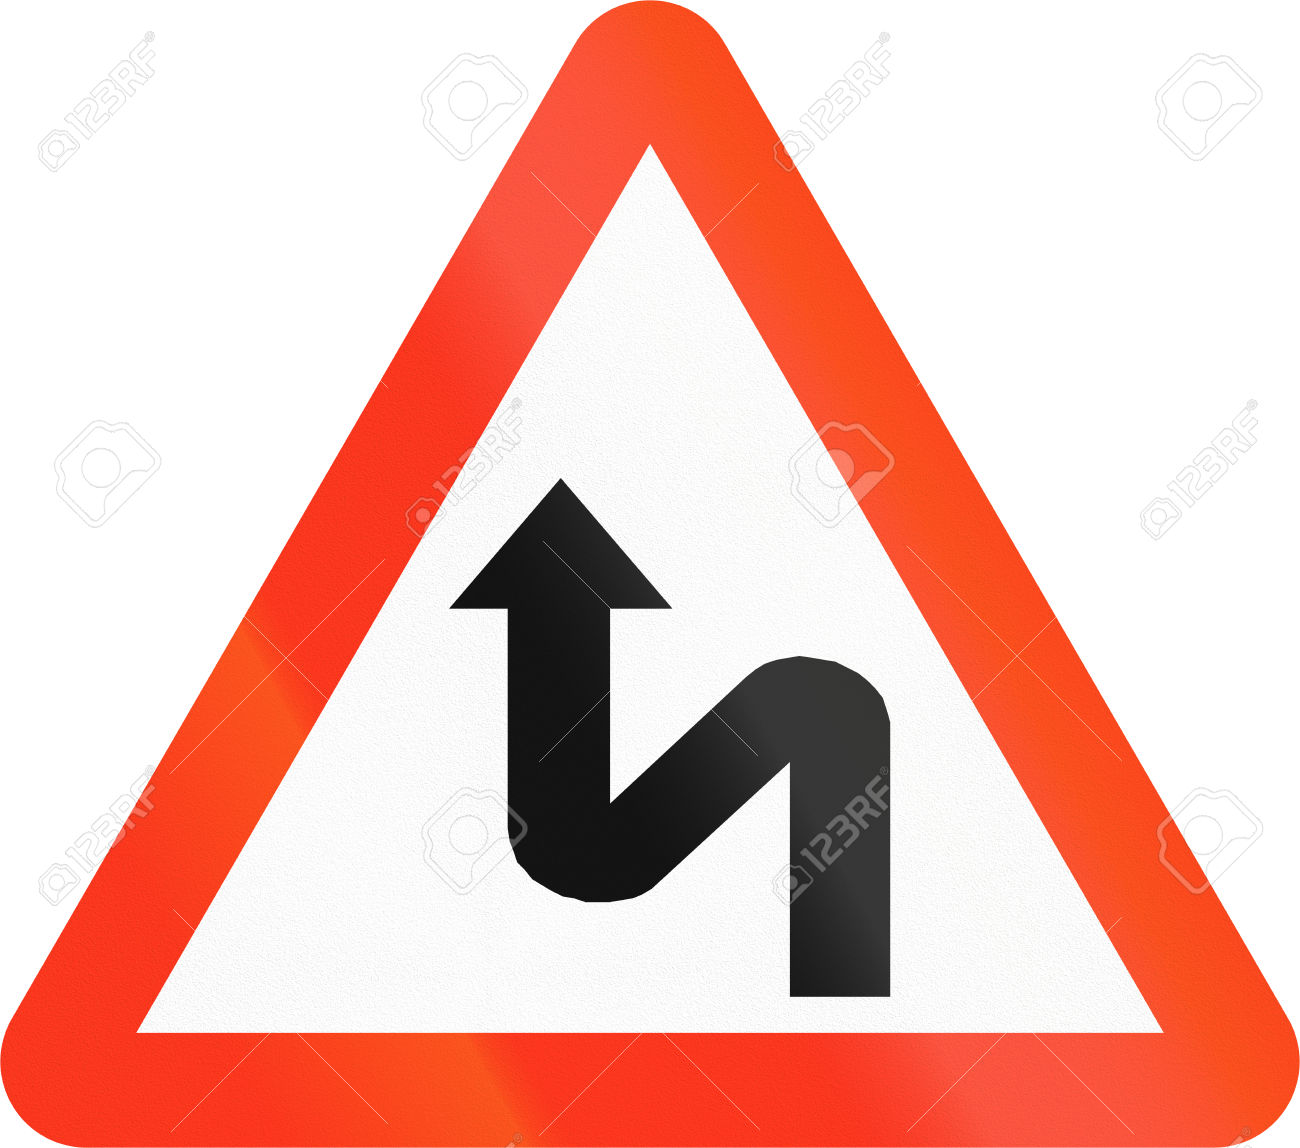 Bangladeshi Sign Warning About A Double Curve First To Left. Stock.